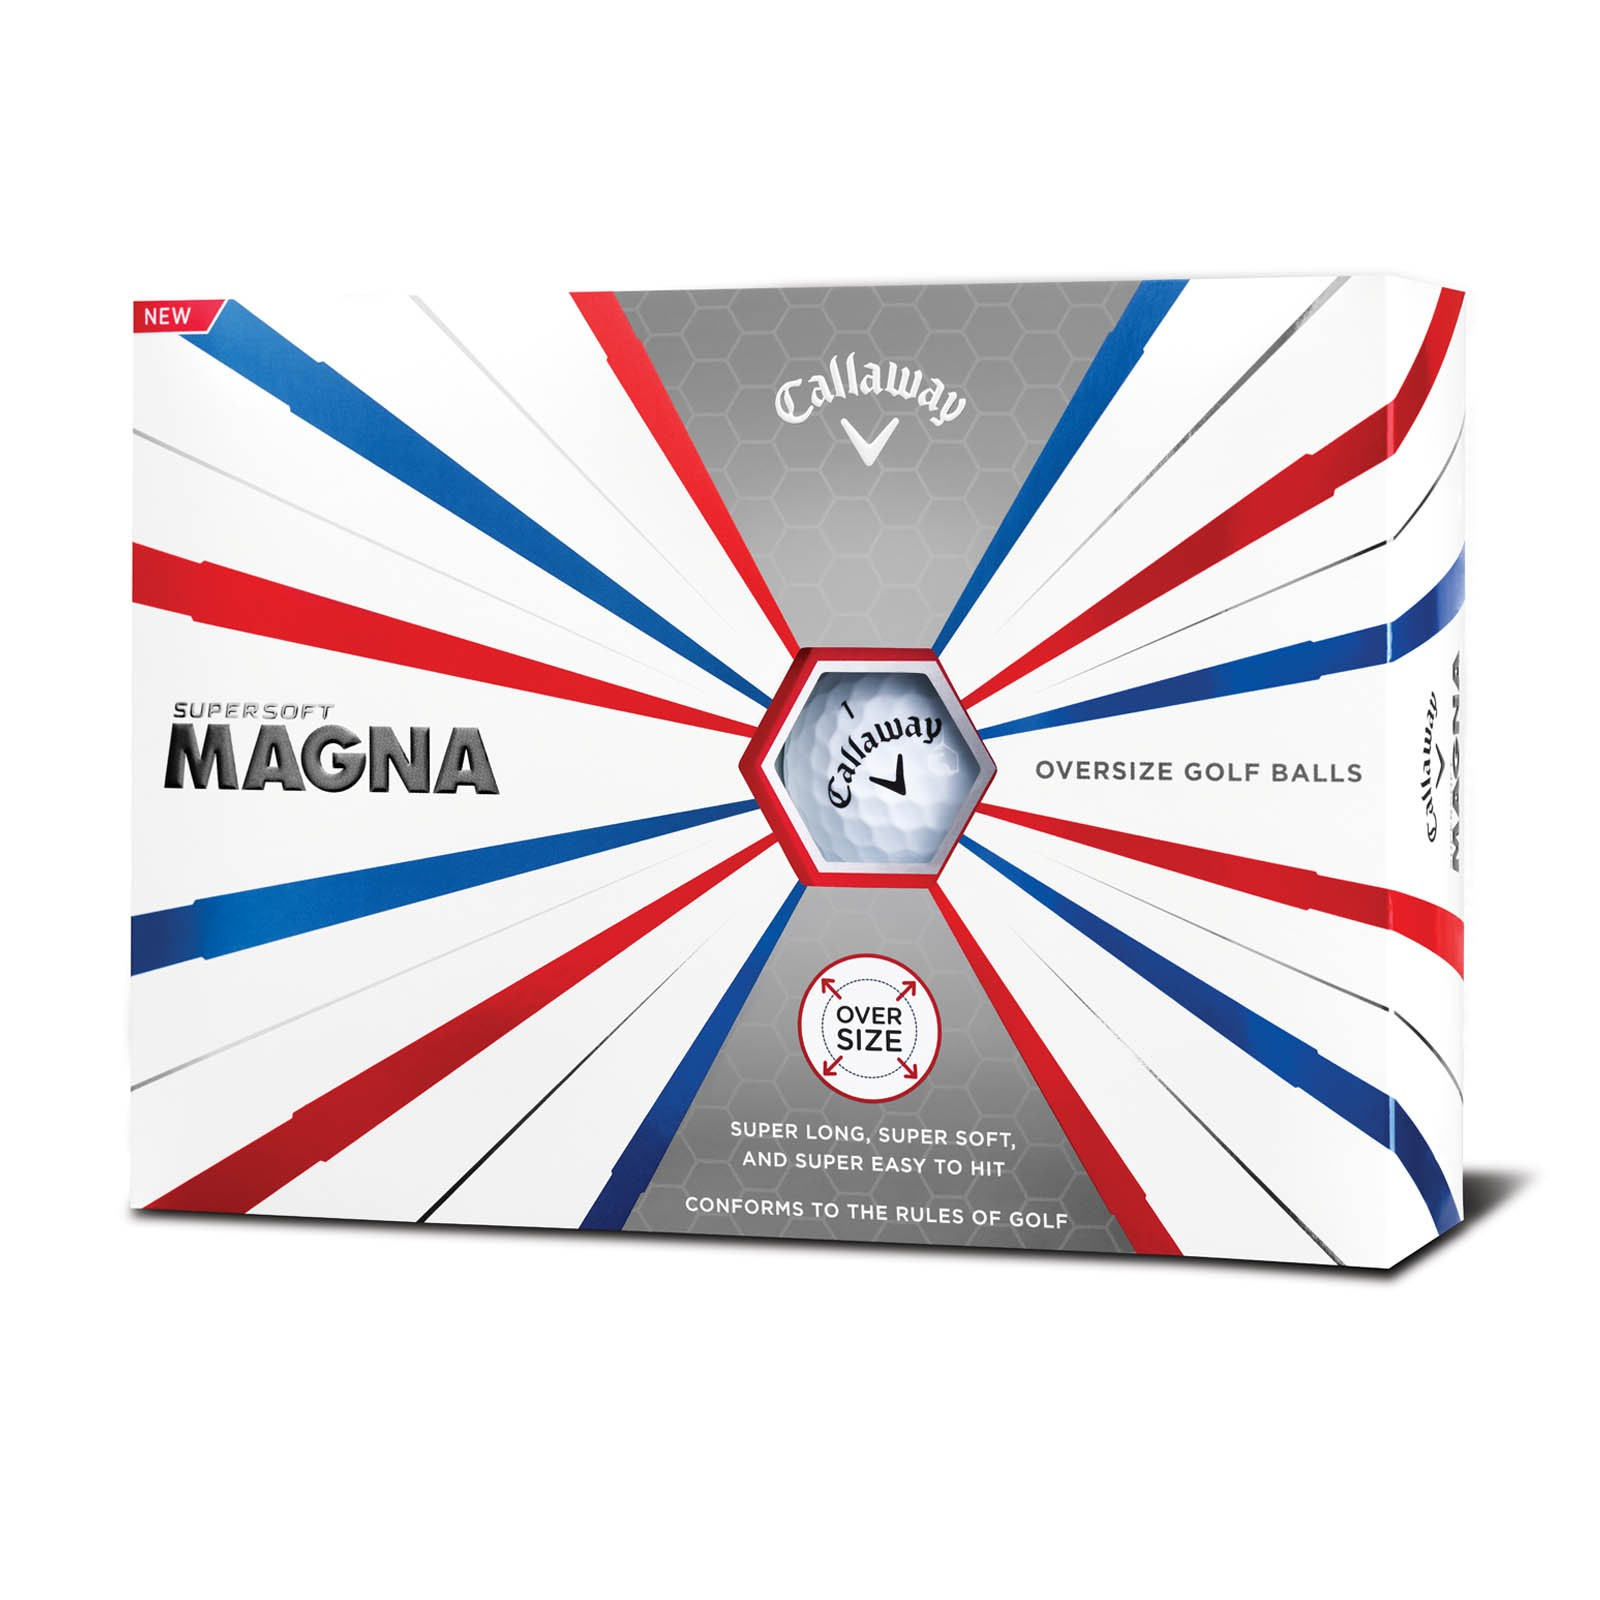 Callaway Supersoft Magna Golf Balls - Multibuy x 2